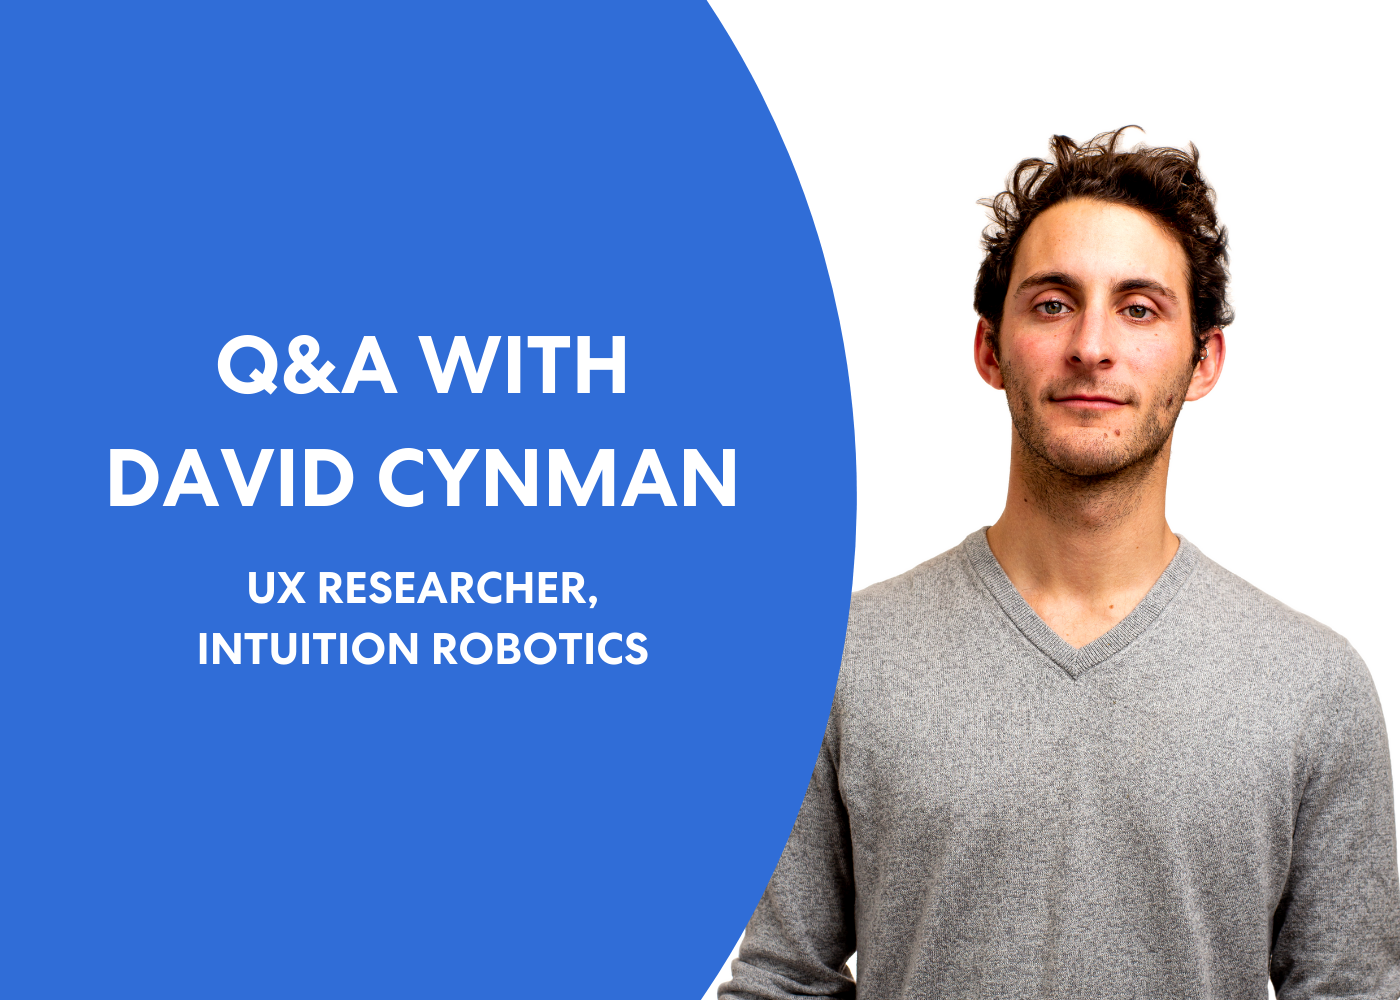 Q&A with David Cynman, UX Researcher at Intuition Robotics